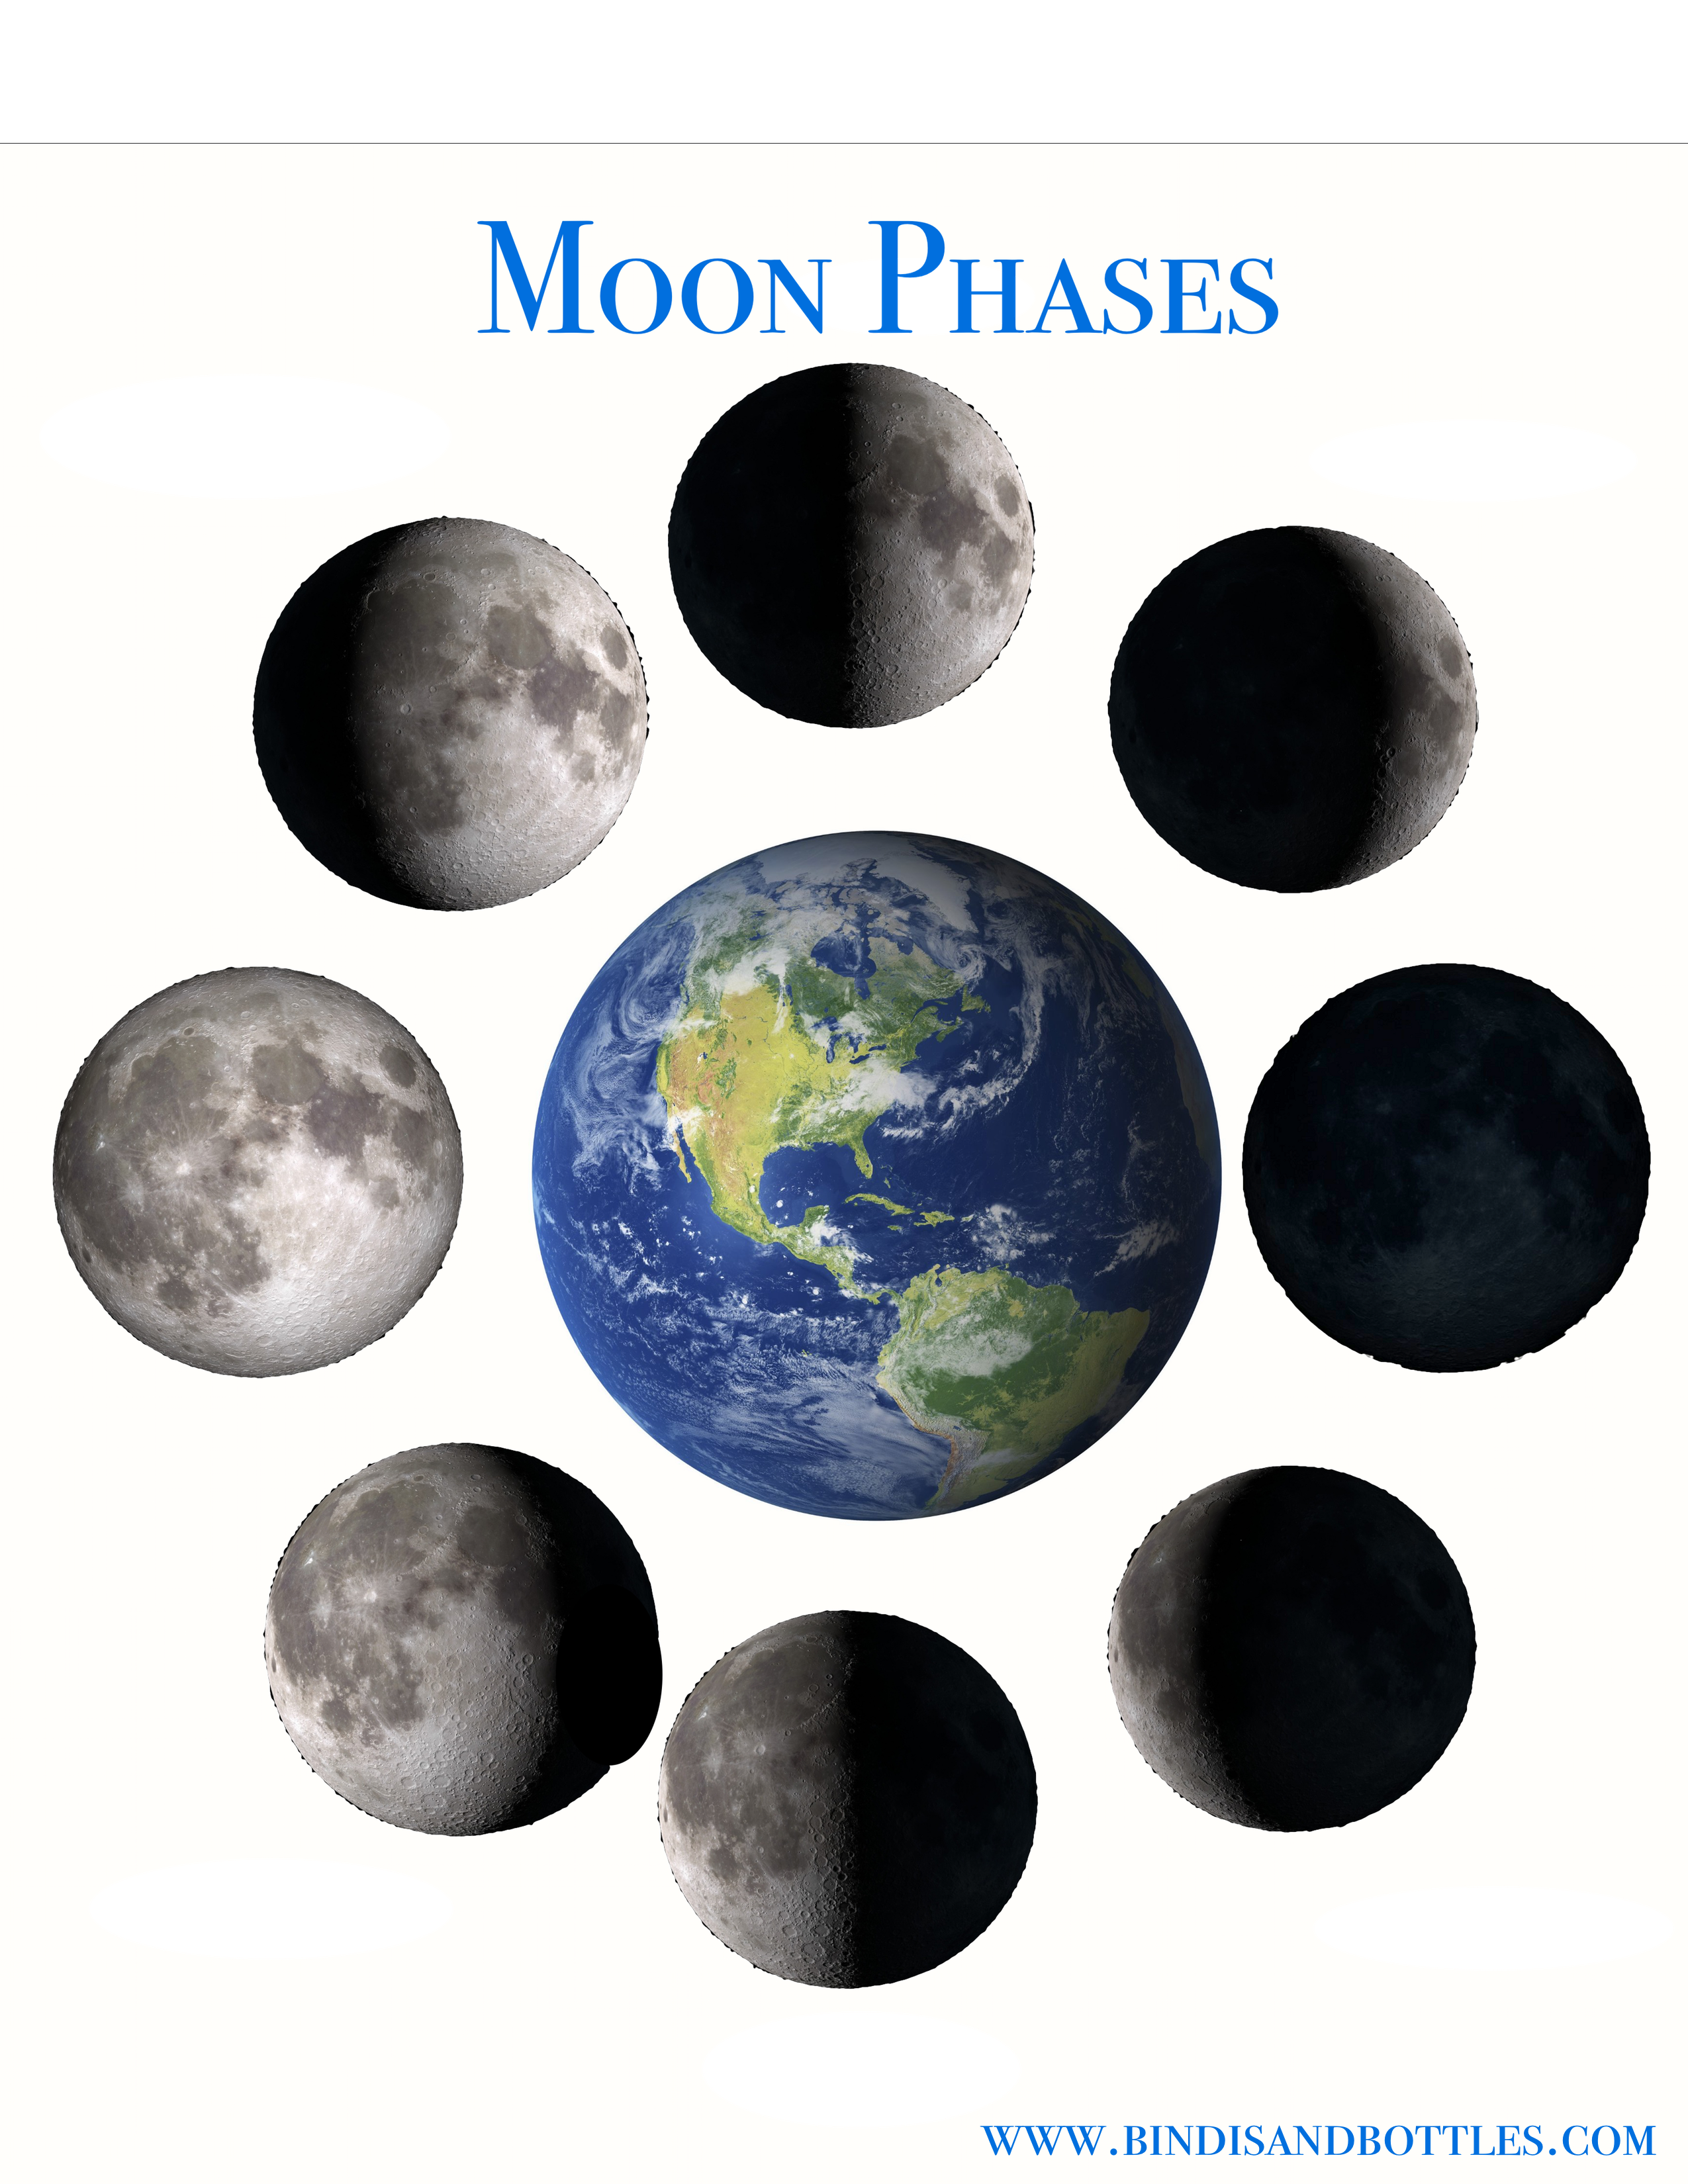 Free Moon Phases Printable Sheet Without Text Great For Toddlers And Younger Children Homeschooling Printables Moon Phases Moon Phase Project Moon Stages [ 3300 x 2550 Pixel ]